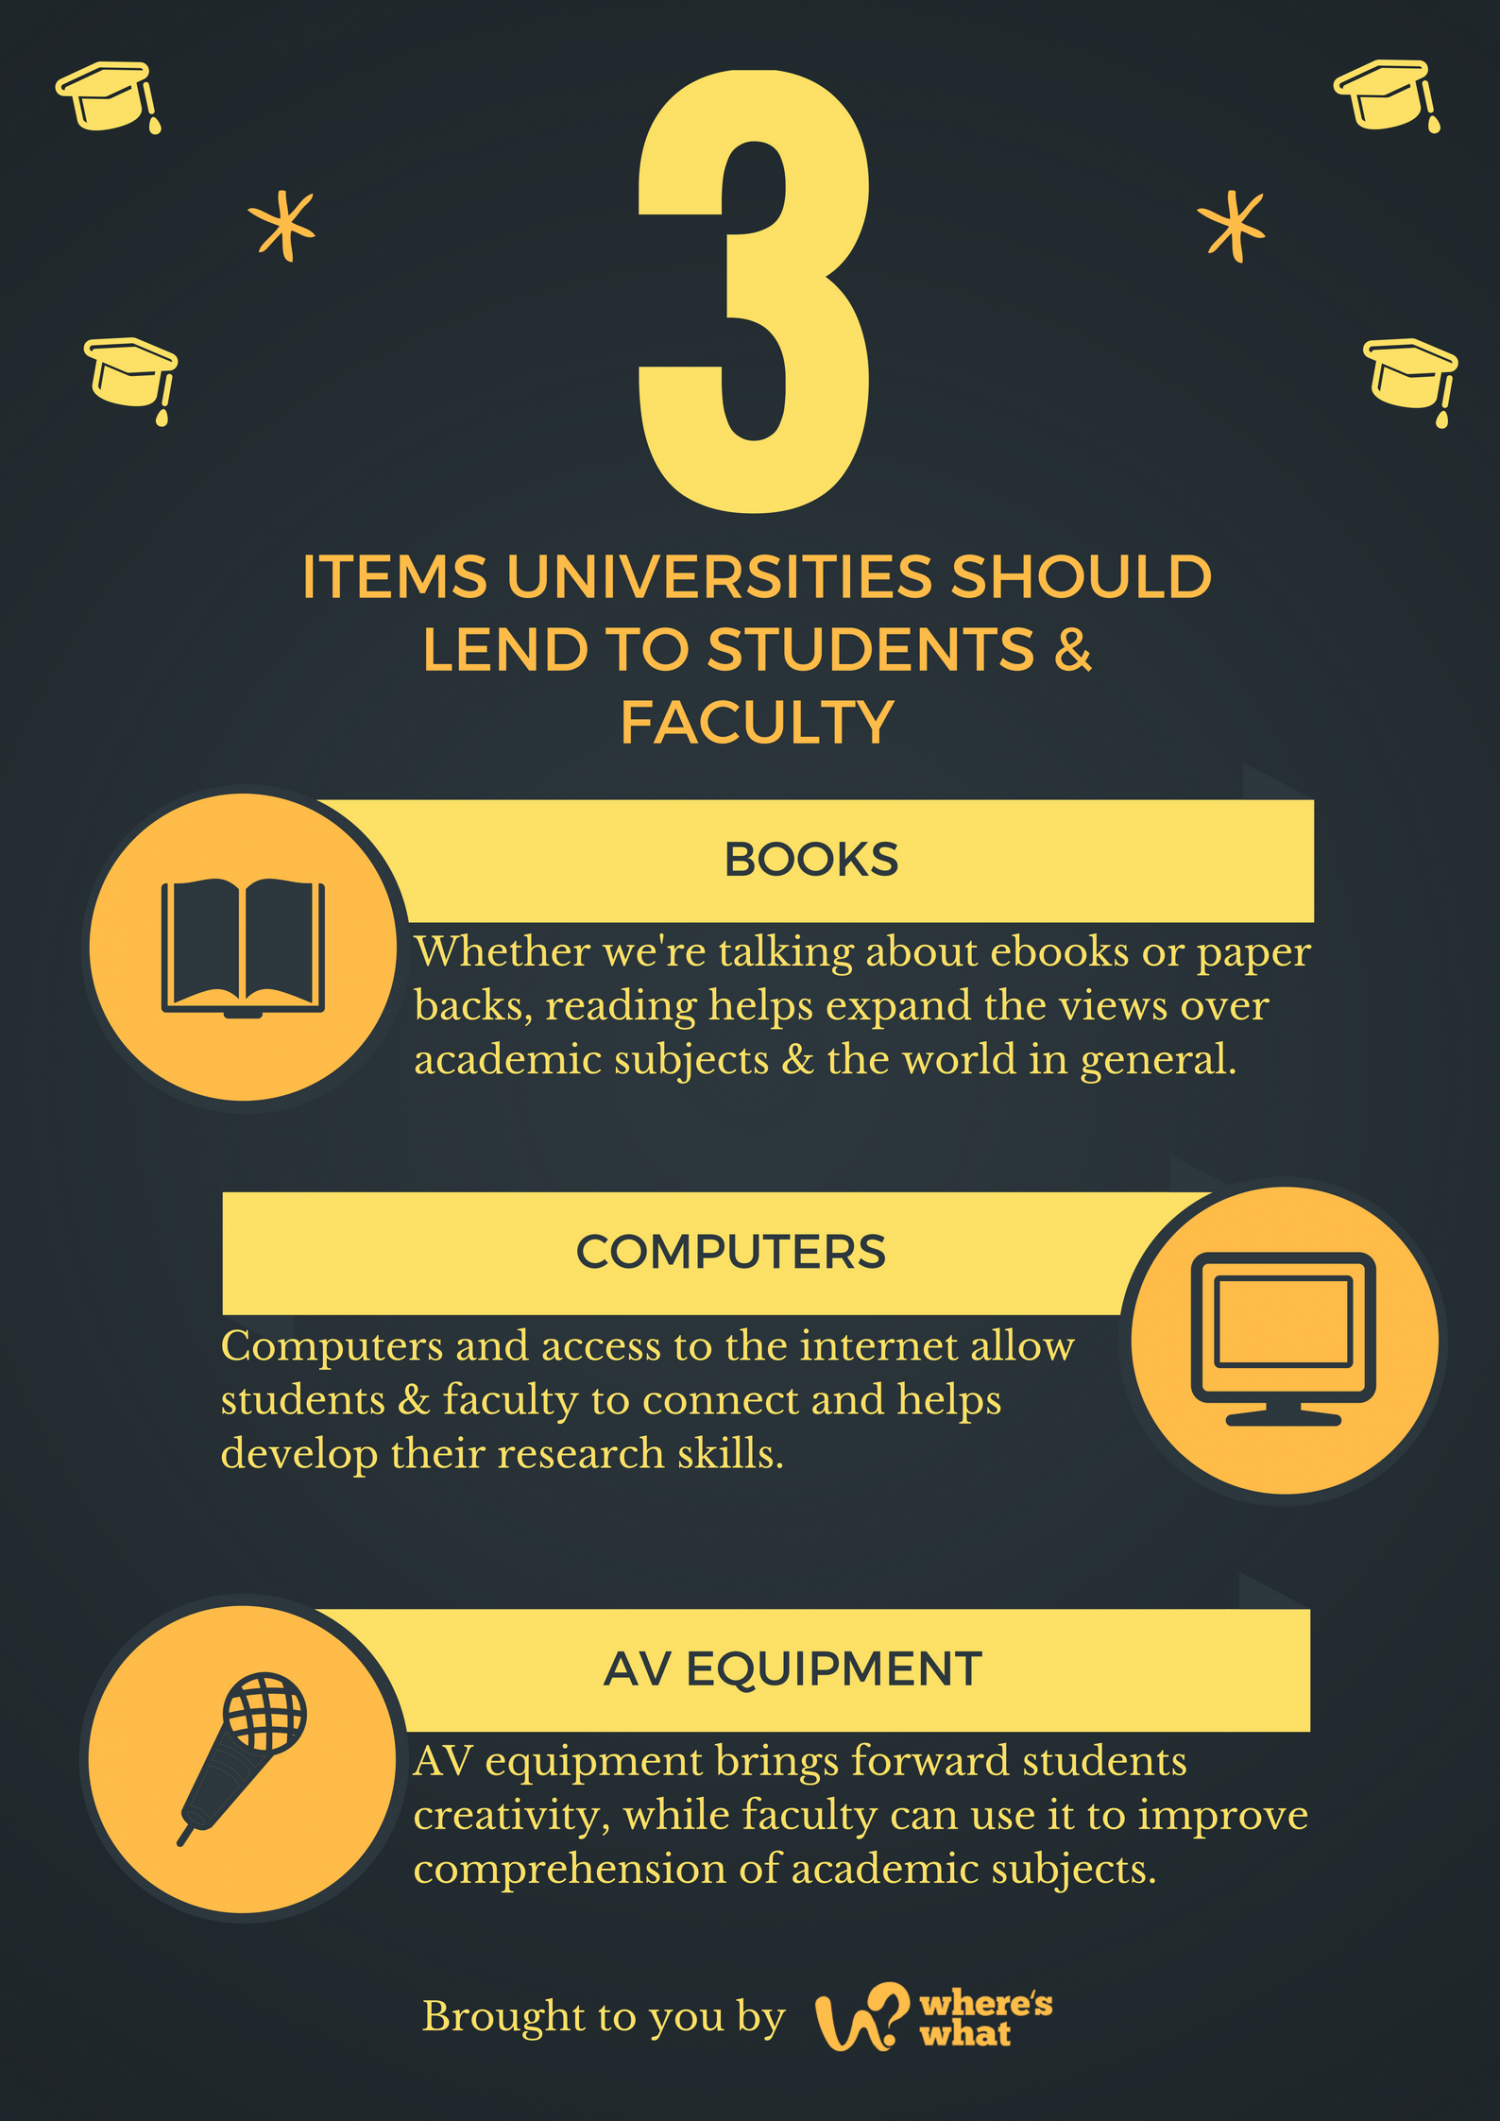 3 items universities should lend to students & faculty Infographic